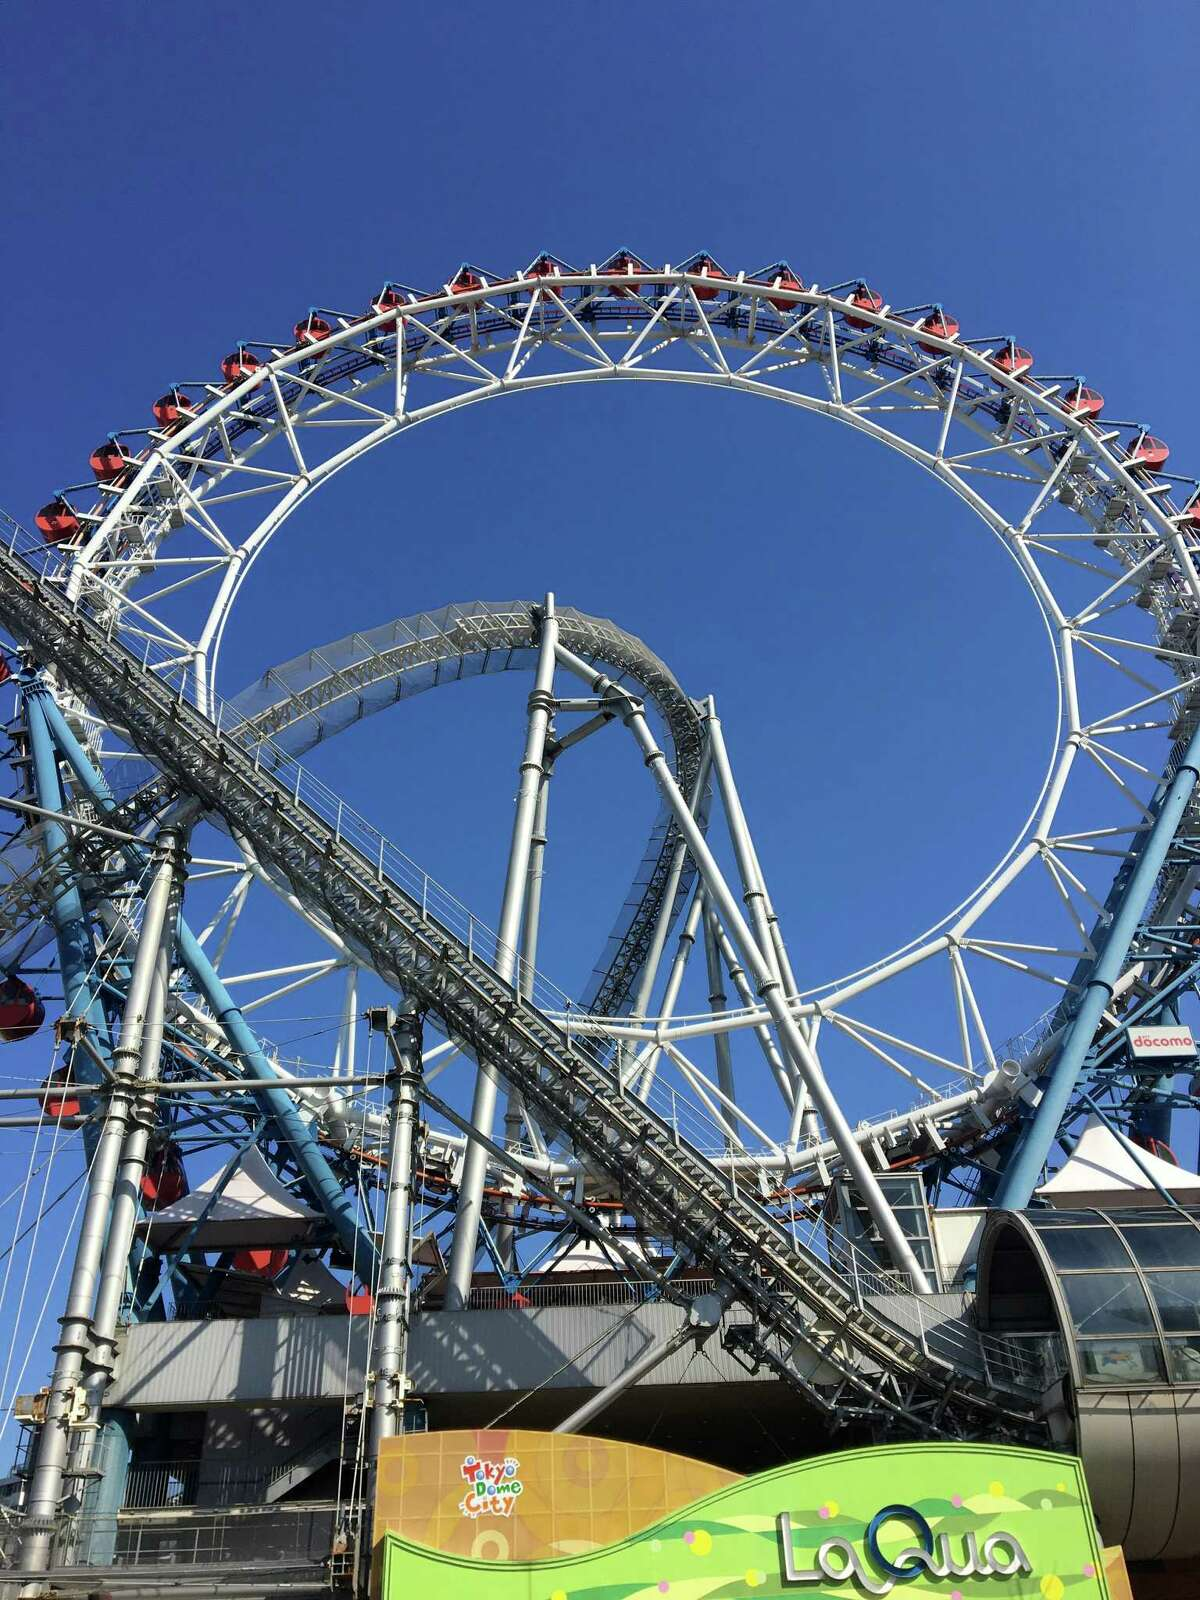 The author and her husband rode Tokyo Dome City's Thunder Dolphin roller coaster during their stop in Japan.